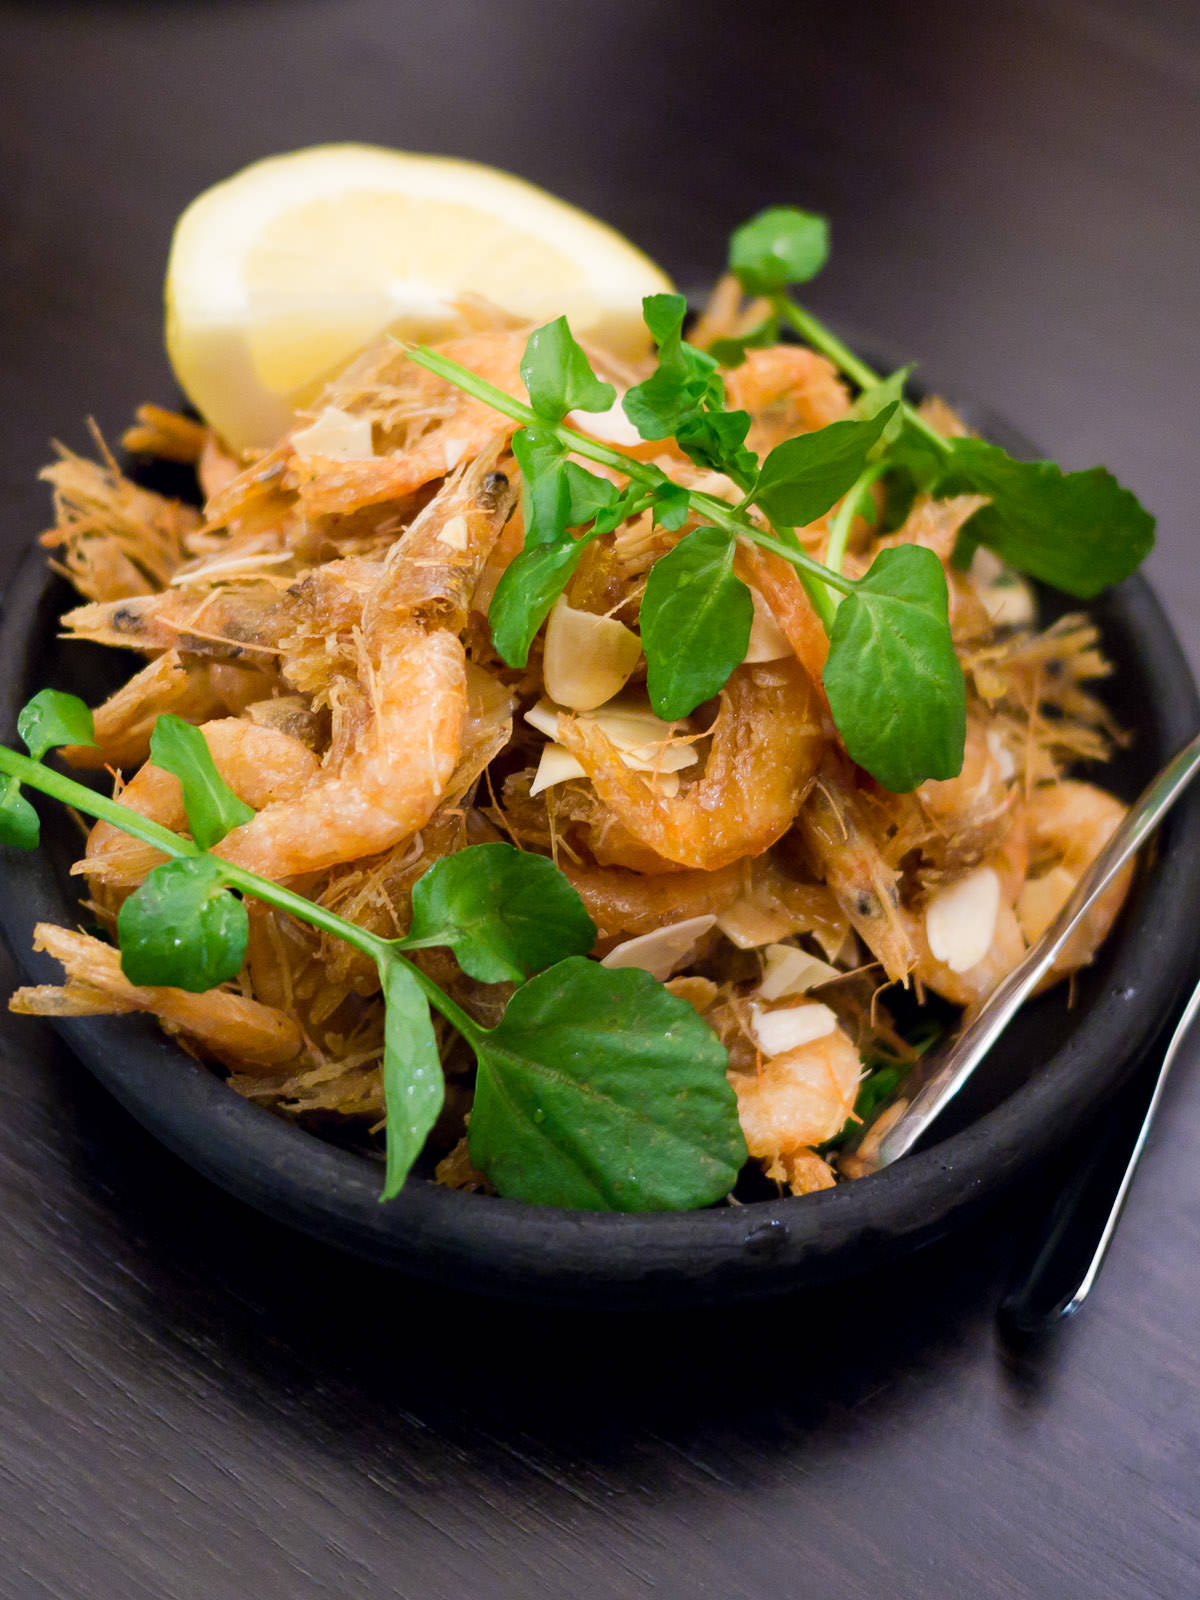 Fried school prawns (AU$11)